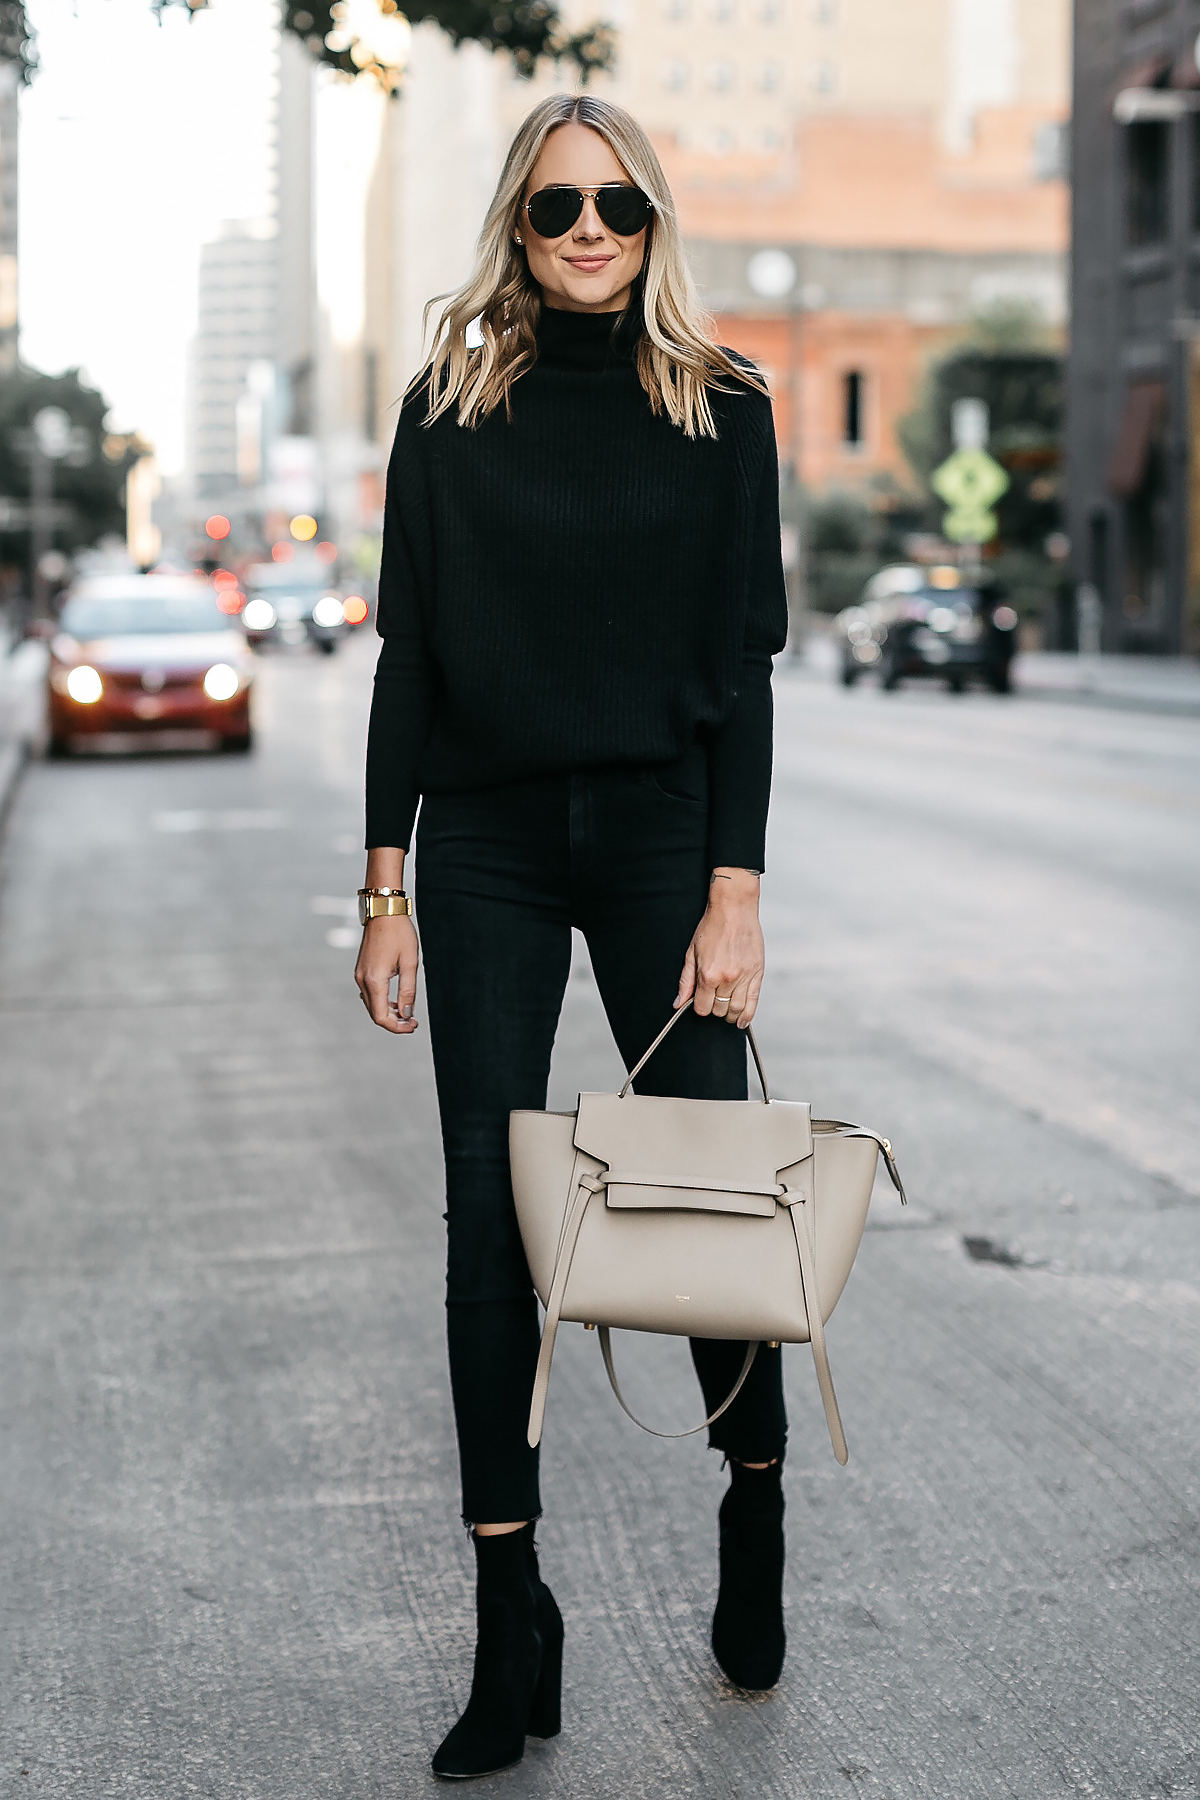 A CHIC BLACK CASHMERE SWEATER